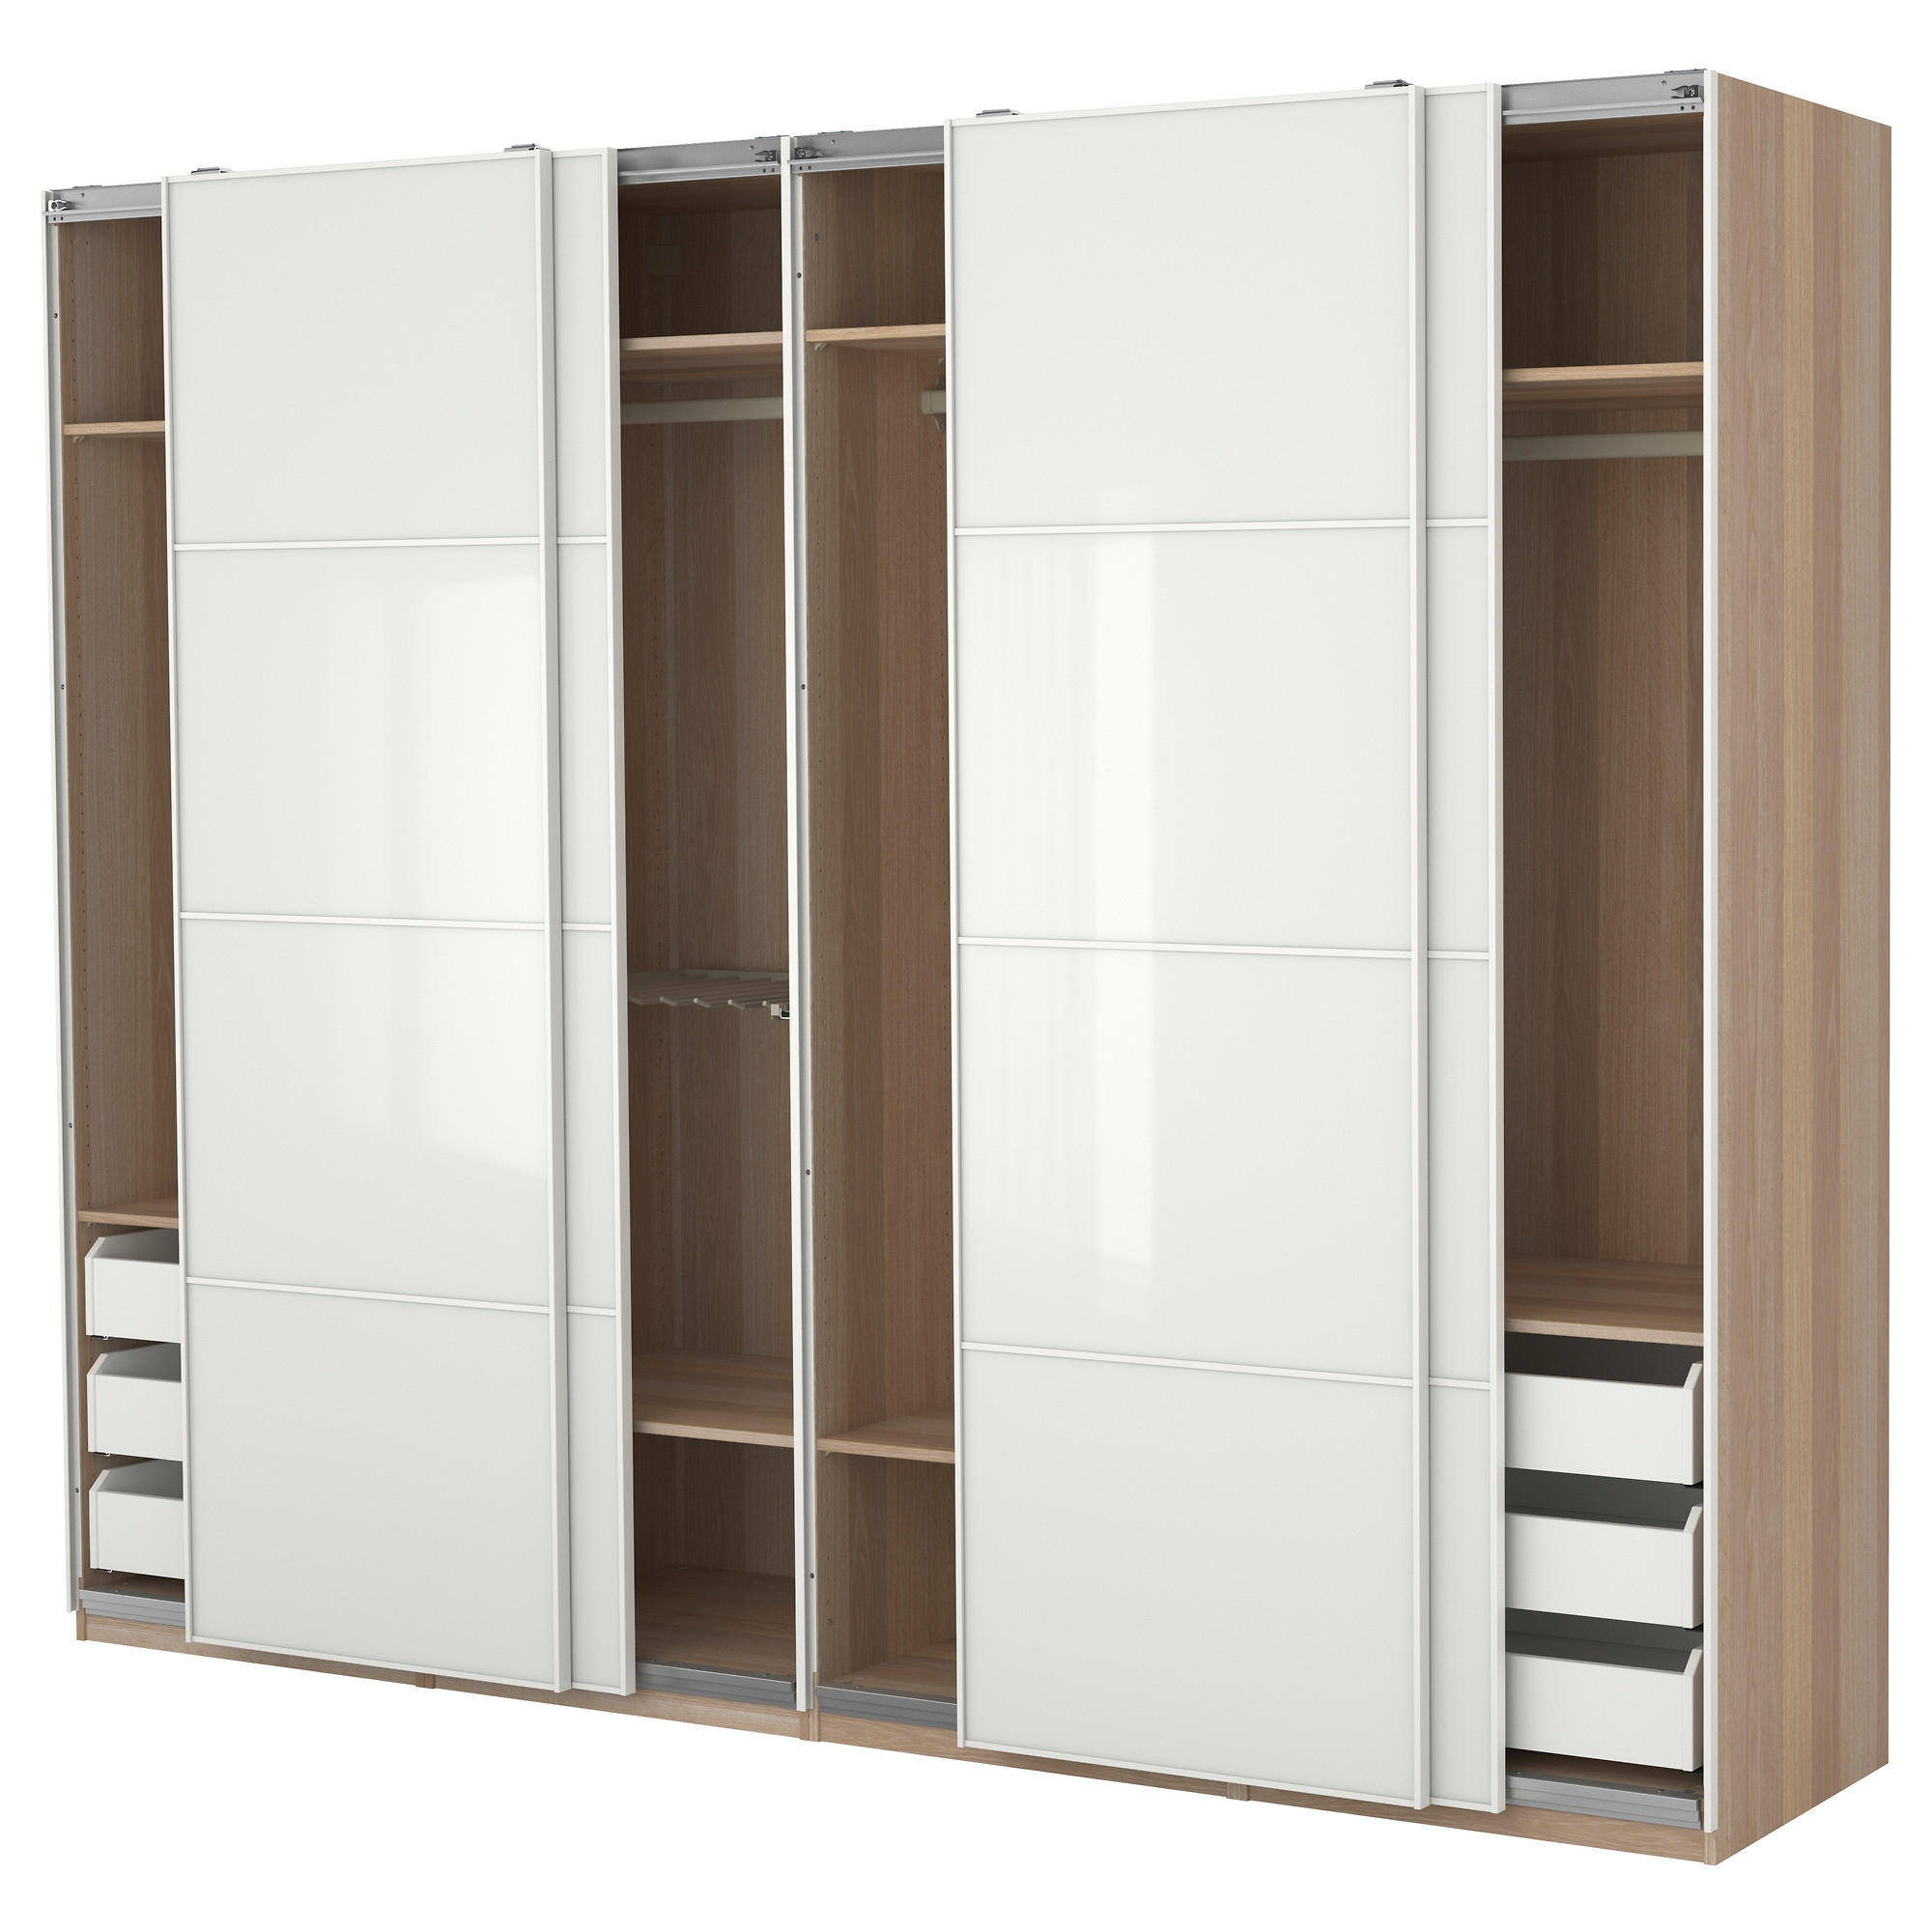 Oversized Solid Wood Wardrobe Closet In Natural Color Scheme With For Solid Wood Built In Wardrobes (Image 10 of 15)